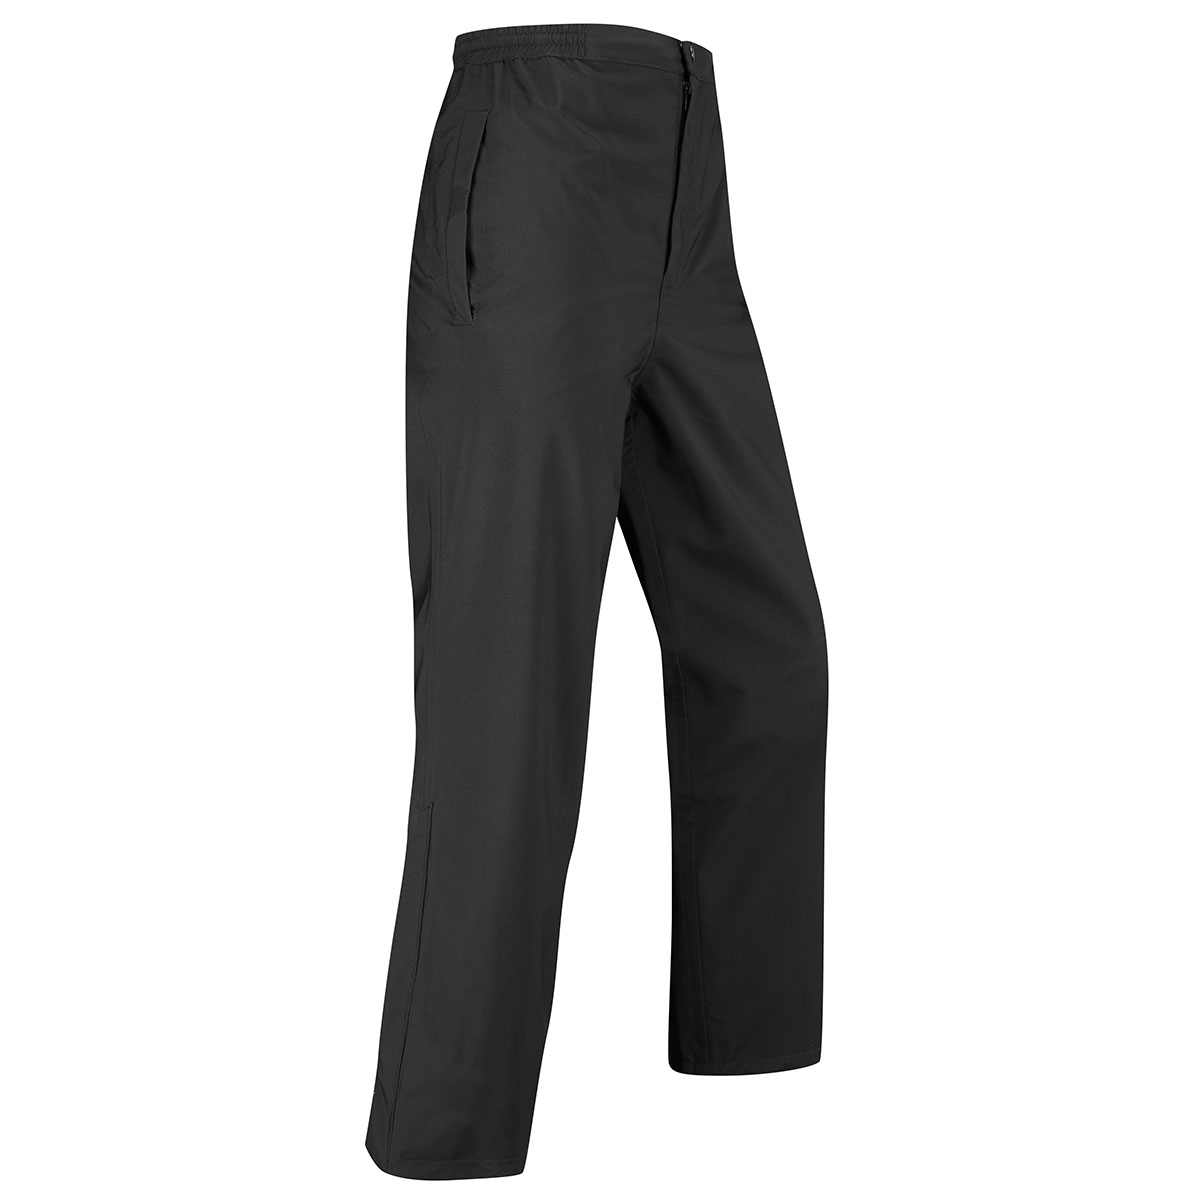 Image result for stuburt endurance lite trousers